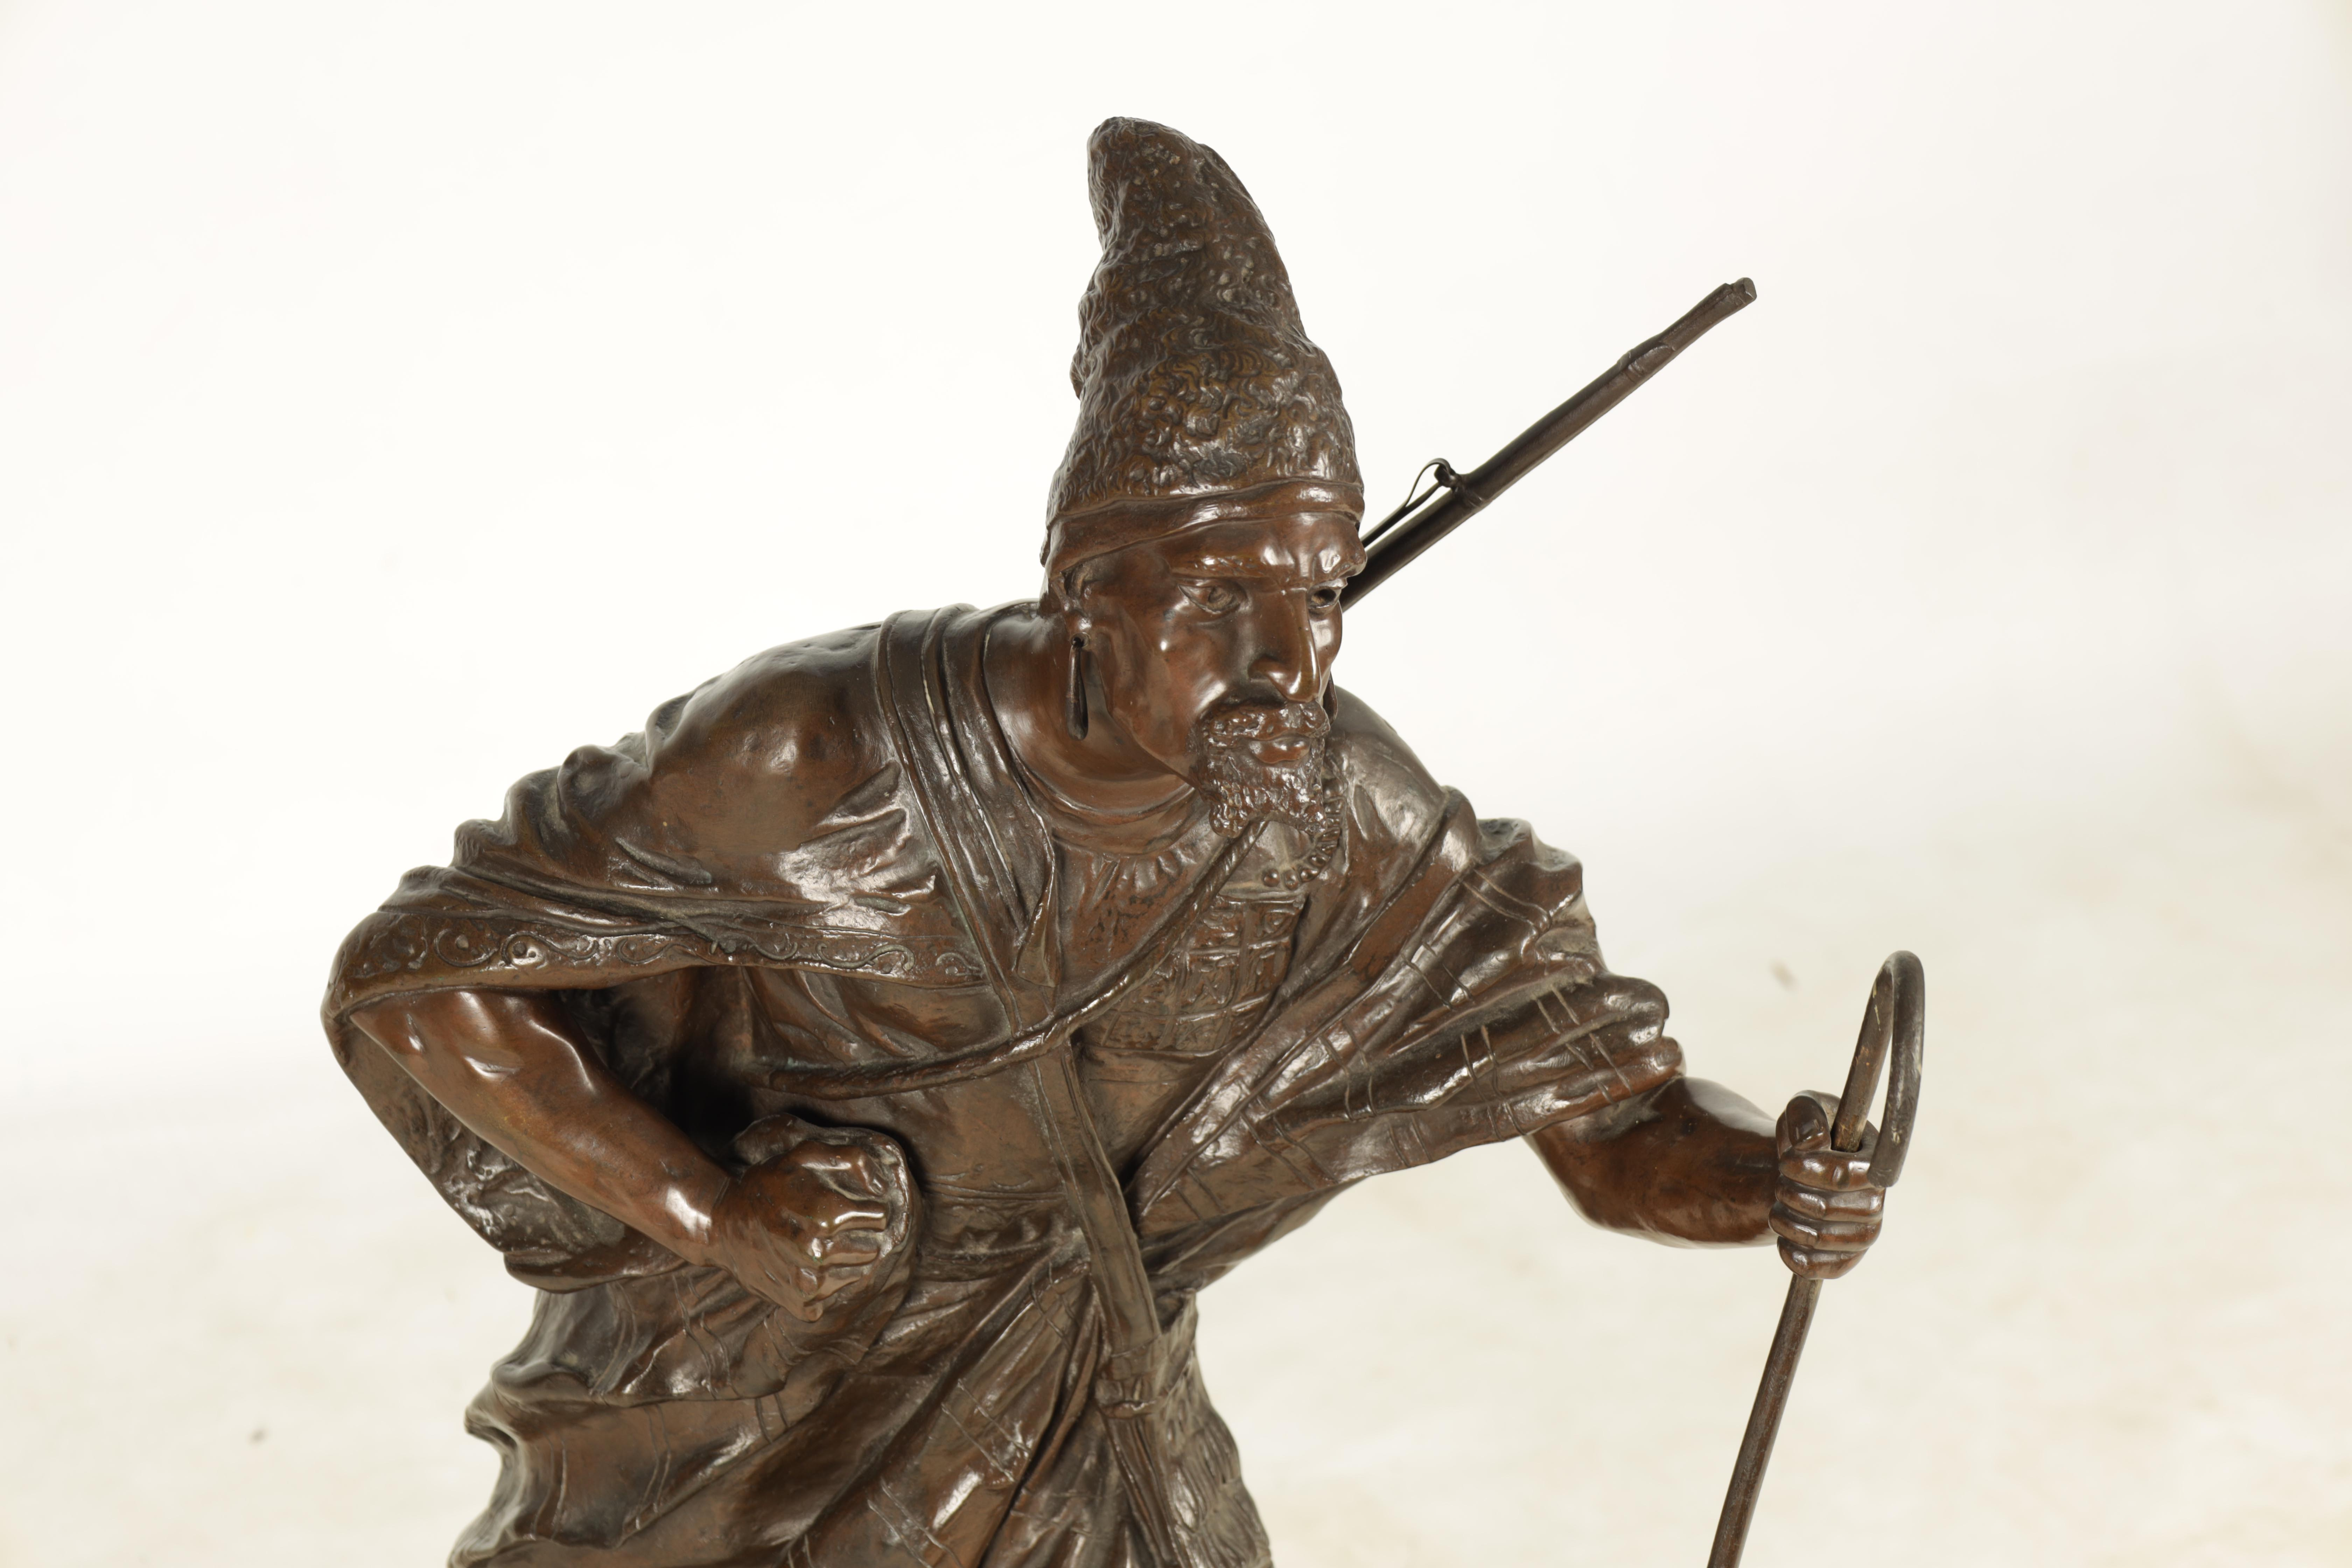 A 19TH CENTURY FRENCH FIGURAL BRONZE depicting an Eastern male figure walking with shepherds crook - Image 2 of 5